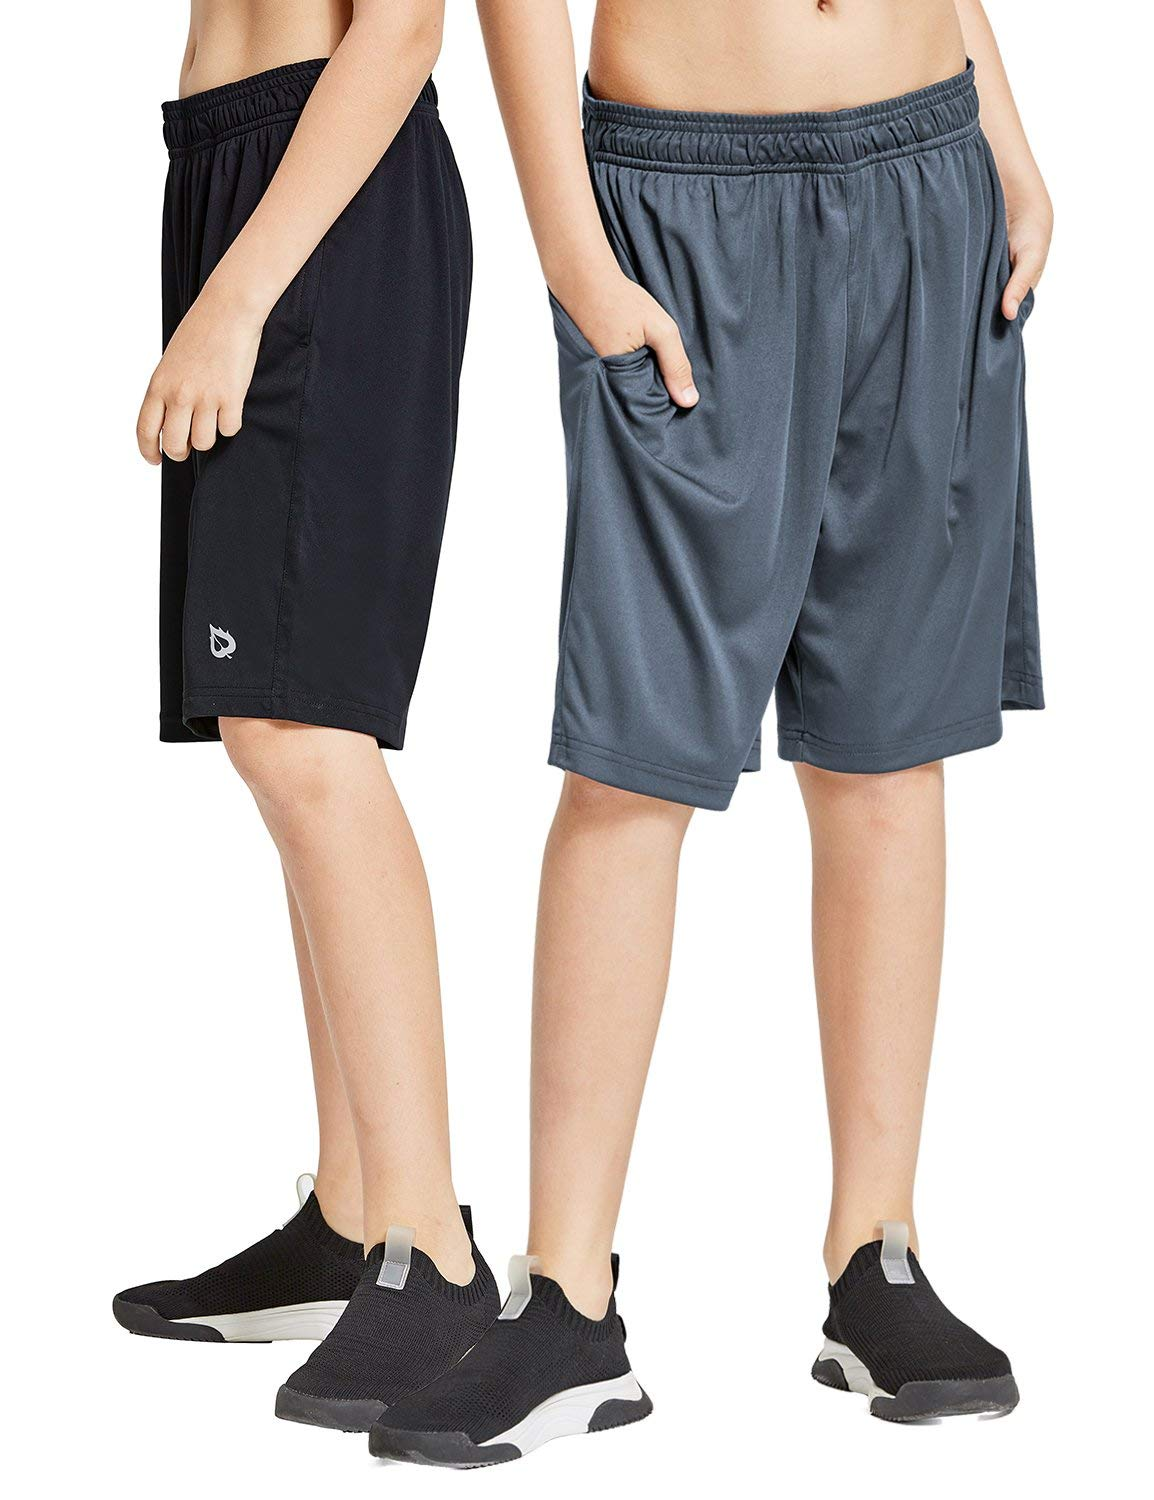 Baleaf Youth Boys' Athletic Running Shorts Pockets Tennis Volleyball Shorts Pack of 2 Black/Gray Size S by Baleaf